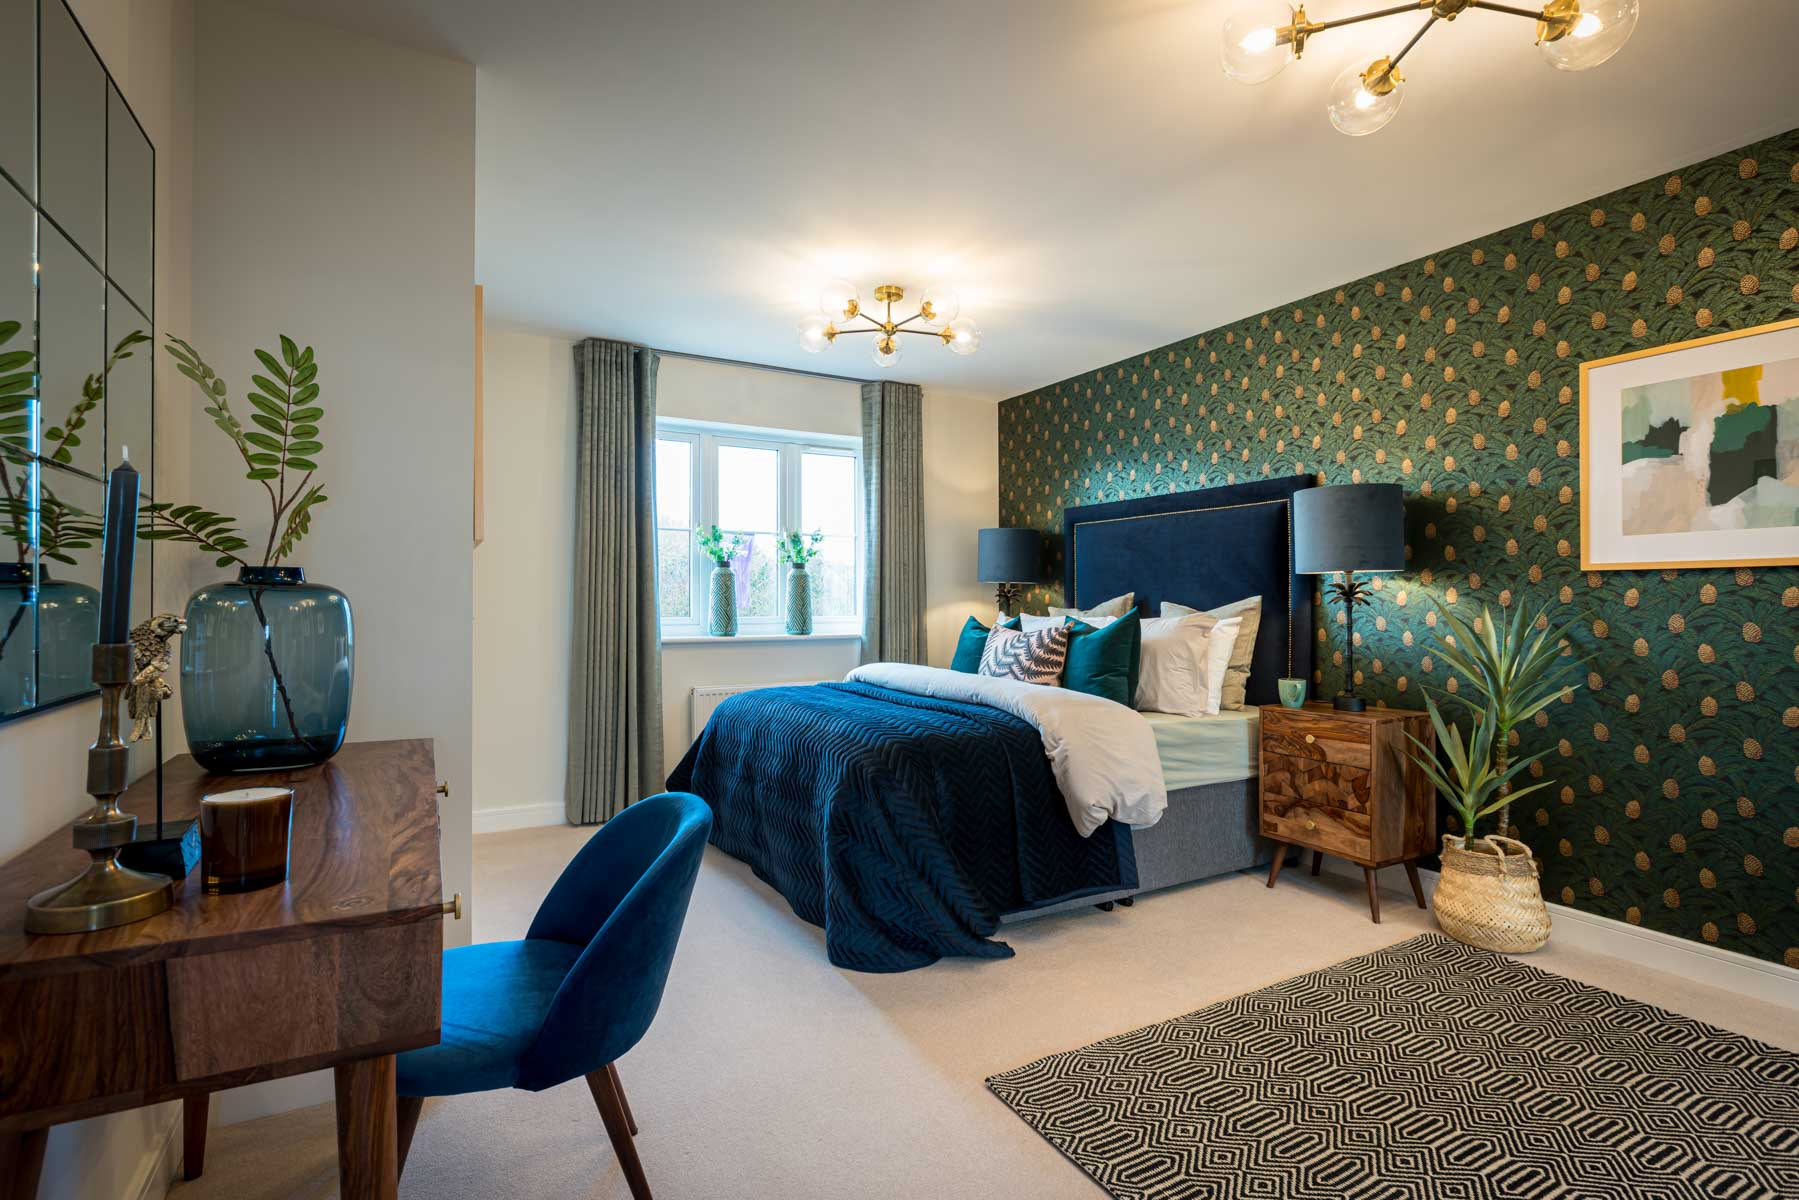 Bampton_Meadows_Marford_Bedroom1_2_Web_1800x1200